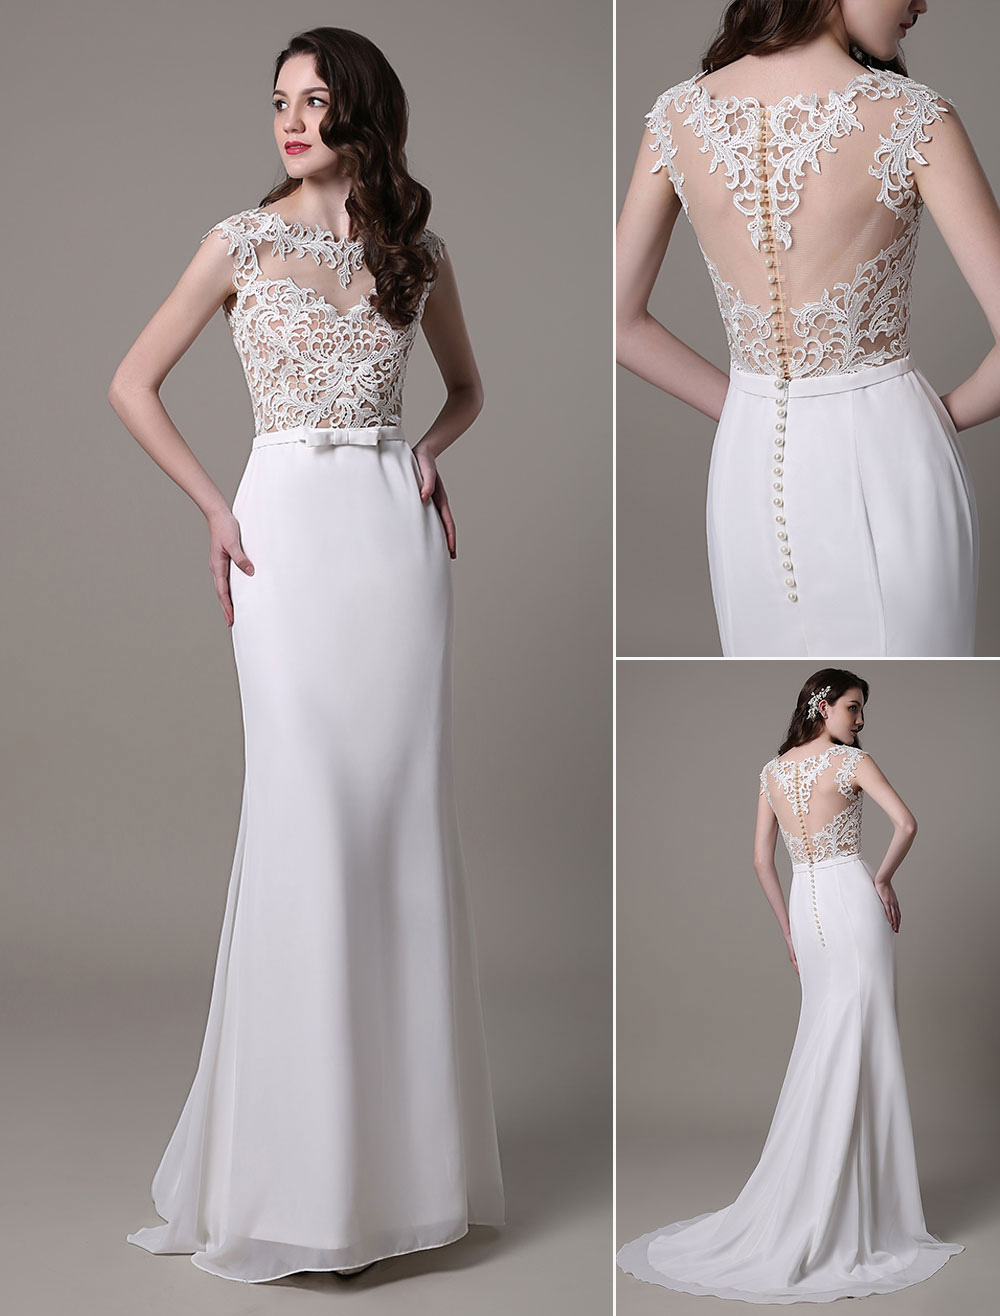 Vintage Wedding Dress Lace And Chiffon Sheath With Stunning Bateau Illusion Neckline And Illusion Back Milanoo